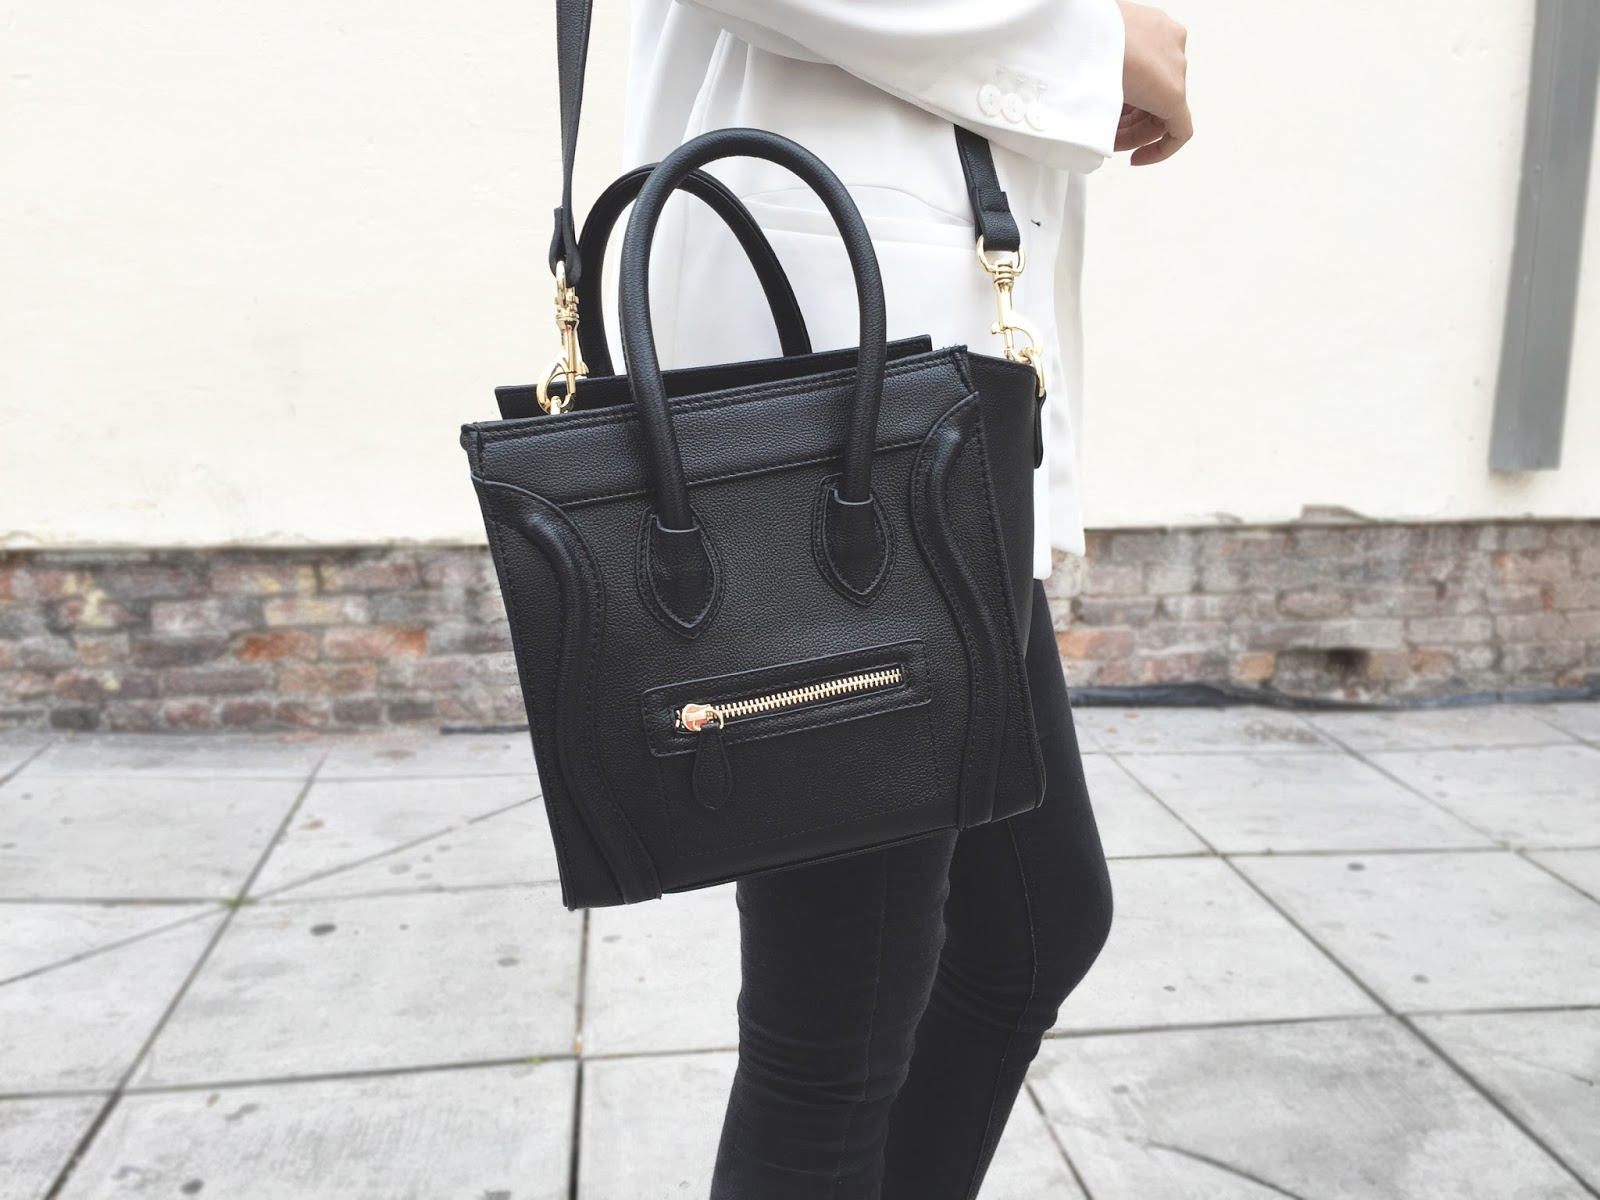 cheap replica celine handbags - The Jade Aesthetic: I don't want to change you